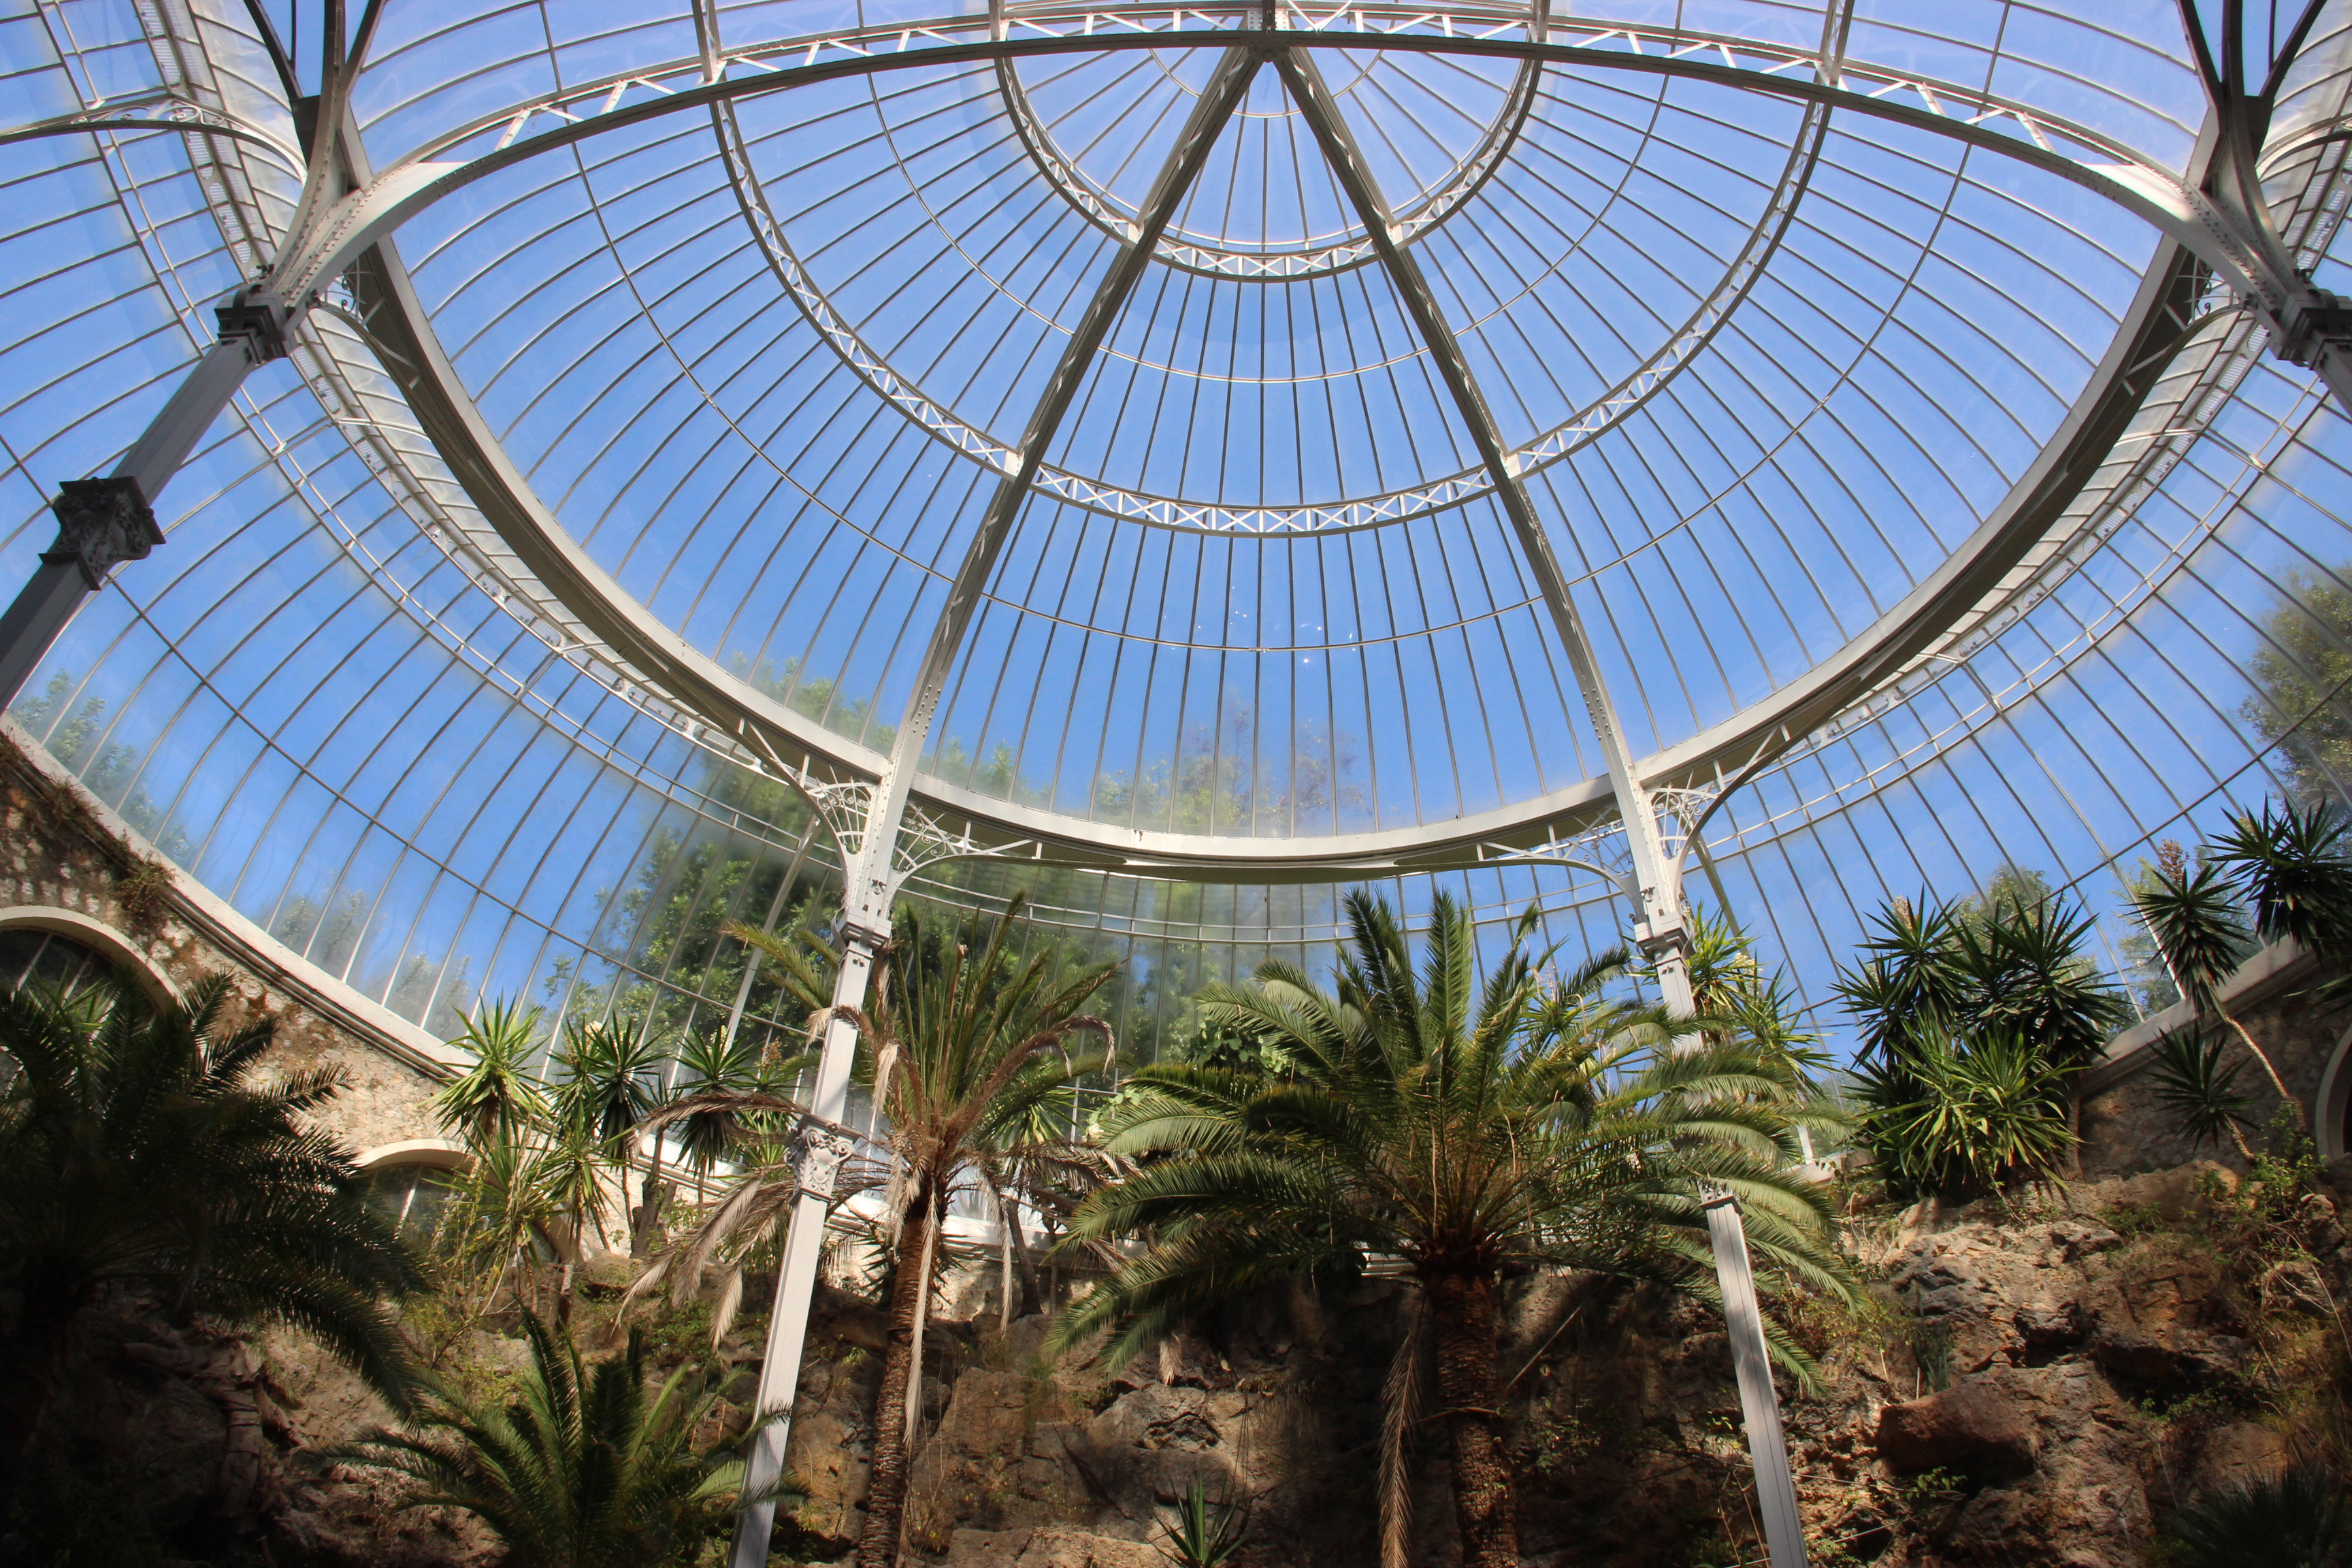 The dome of the Riviera Palace orangery